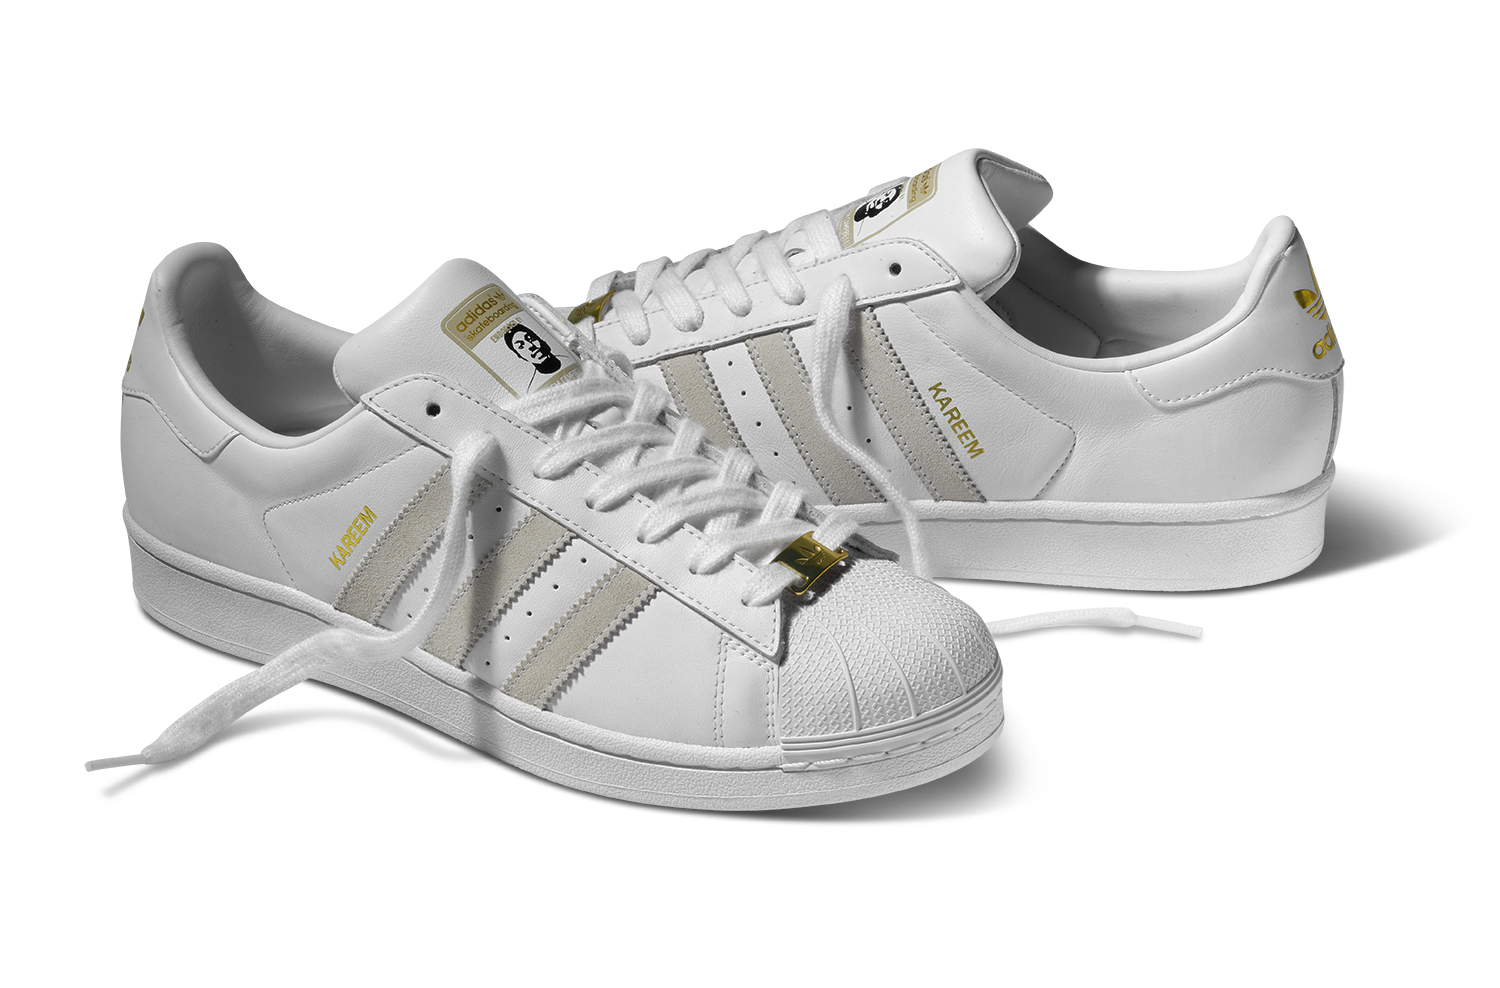 adidas Superstar - Respect your Roots | Place Skateboard Culture